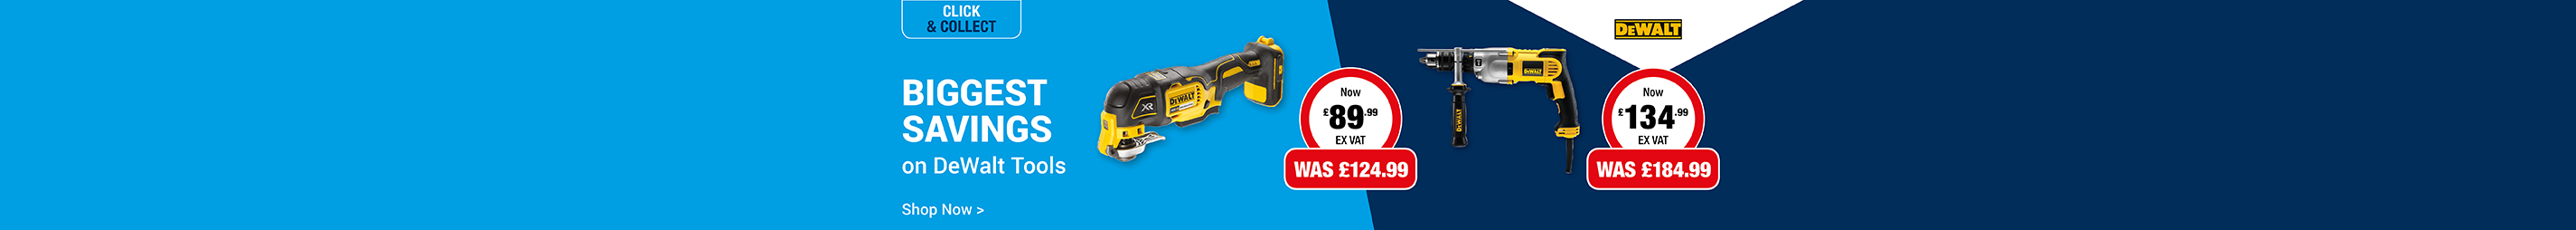 Biggest Savings on DeWalt Tools